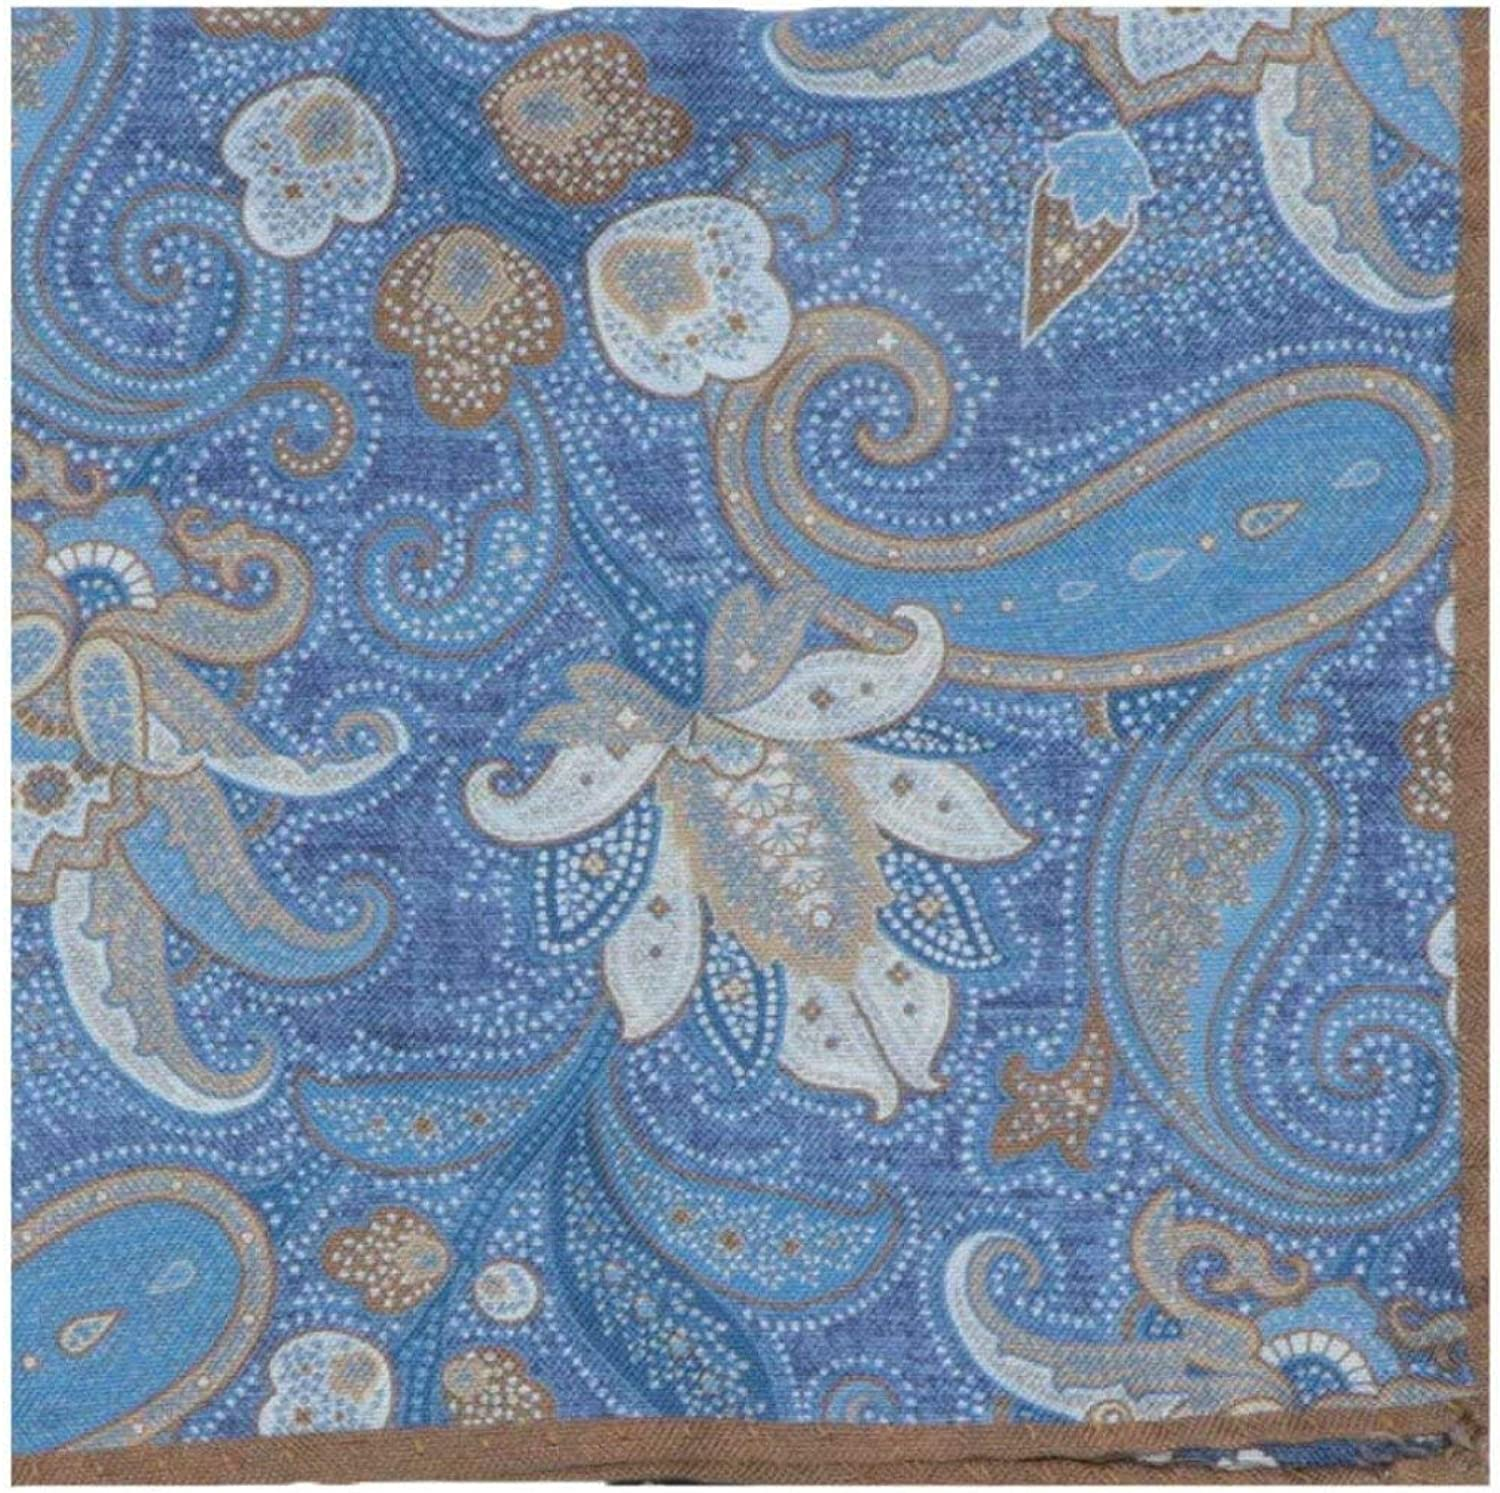 Dion Men's Double Sided Paisley Floral Bordered Pocket Square